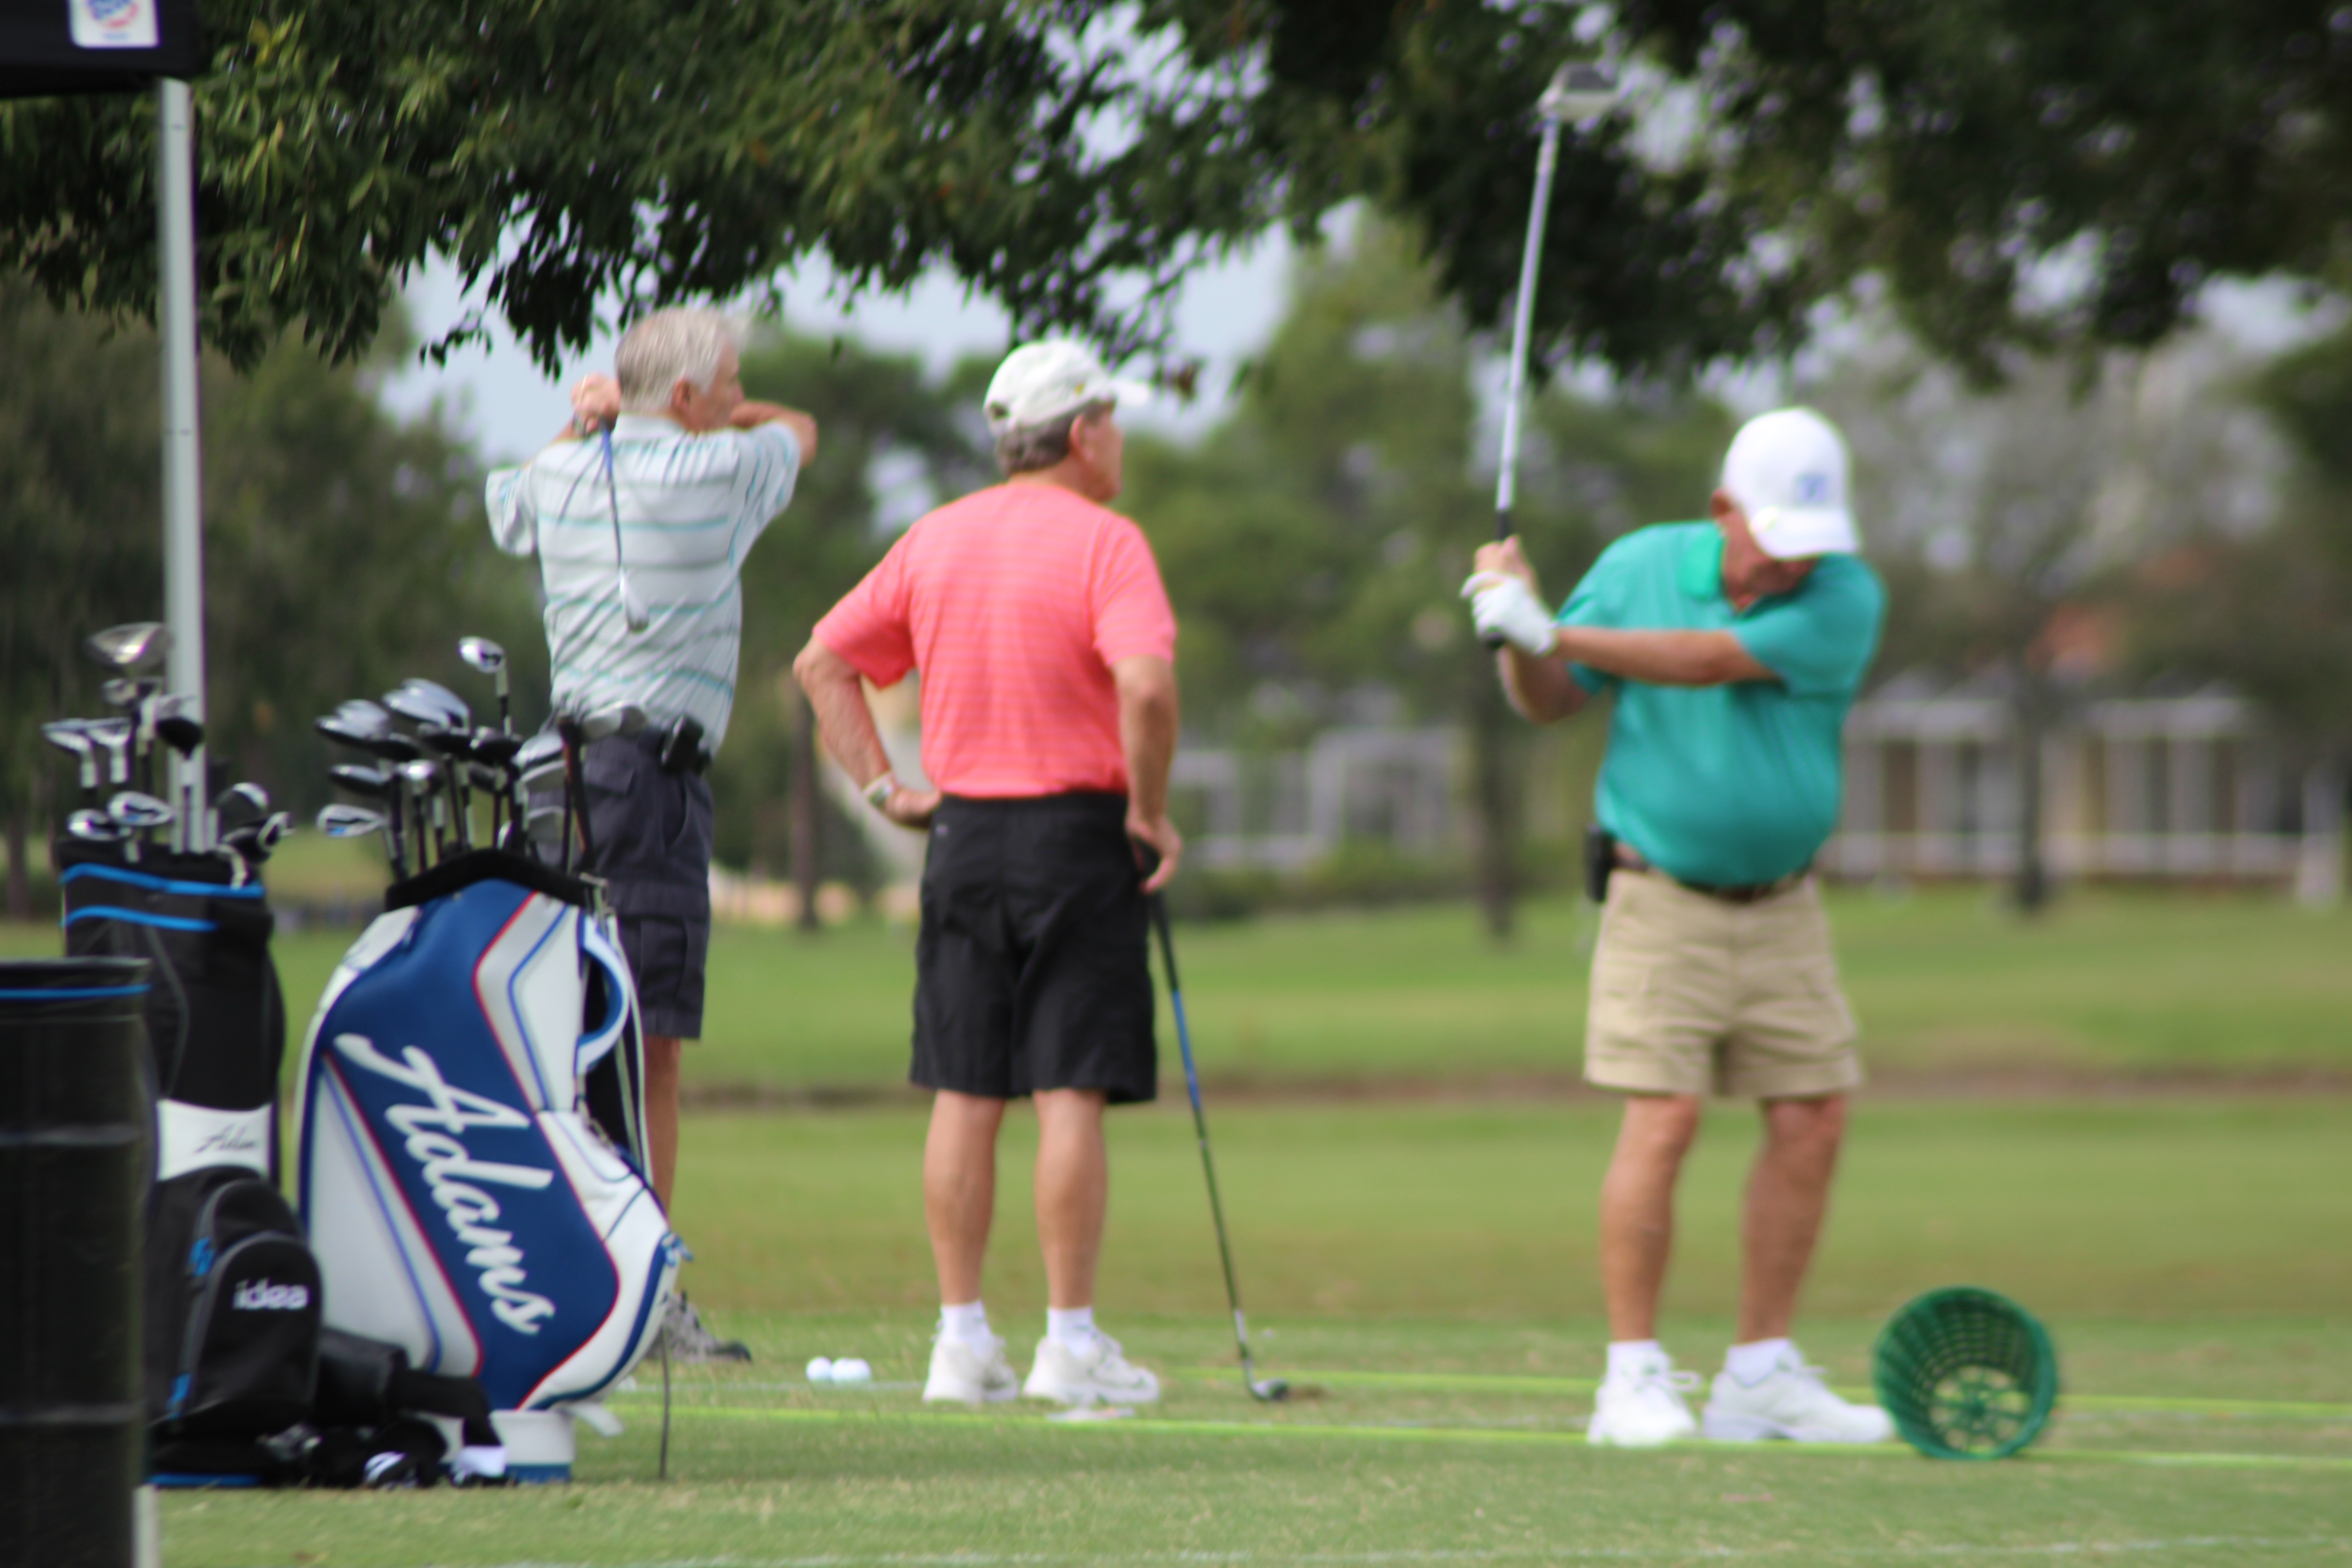 3 guys on the range hitting golf balls, practice your golf game